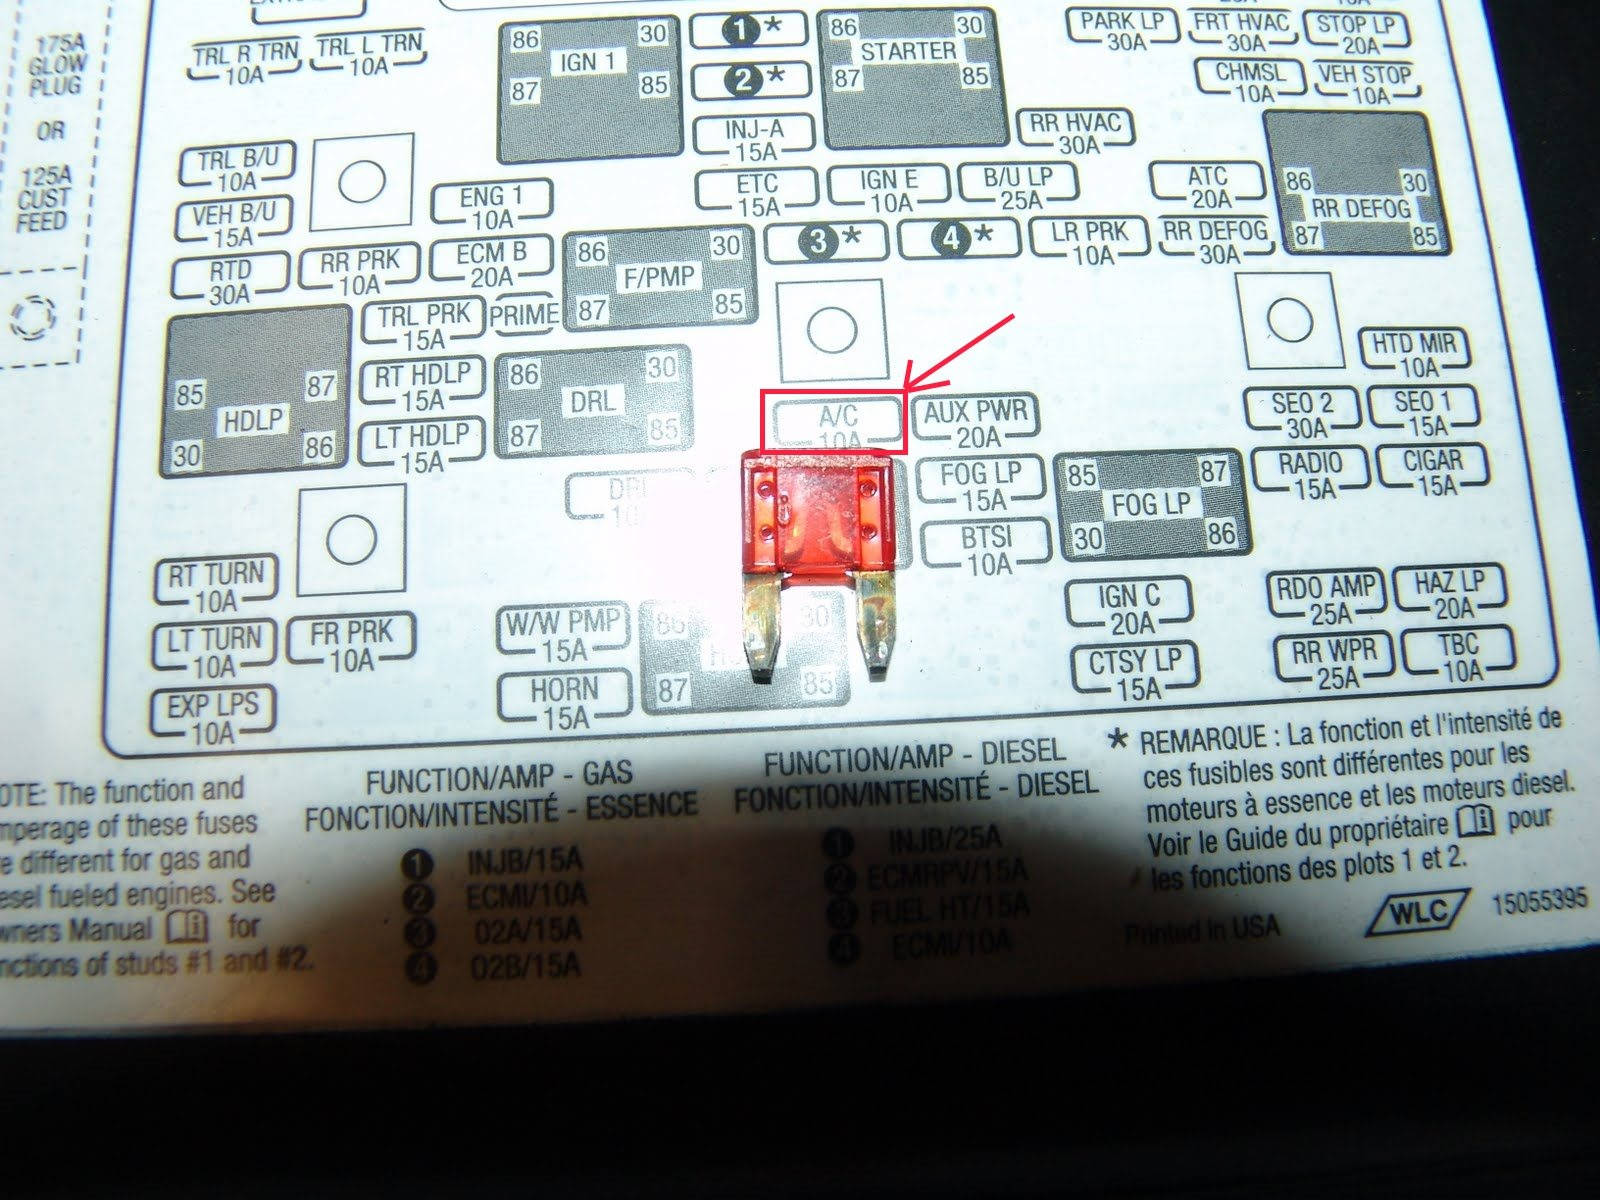 Chevrolet Astro Questions Is There A Second Ac Fuse Under The. Is There A Second Ac Fuse Under The Hood Pump Not Working. GM. Volvo GM 1990 Fuse Box Diagram At Scoala.co